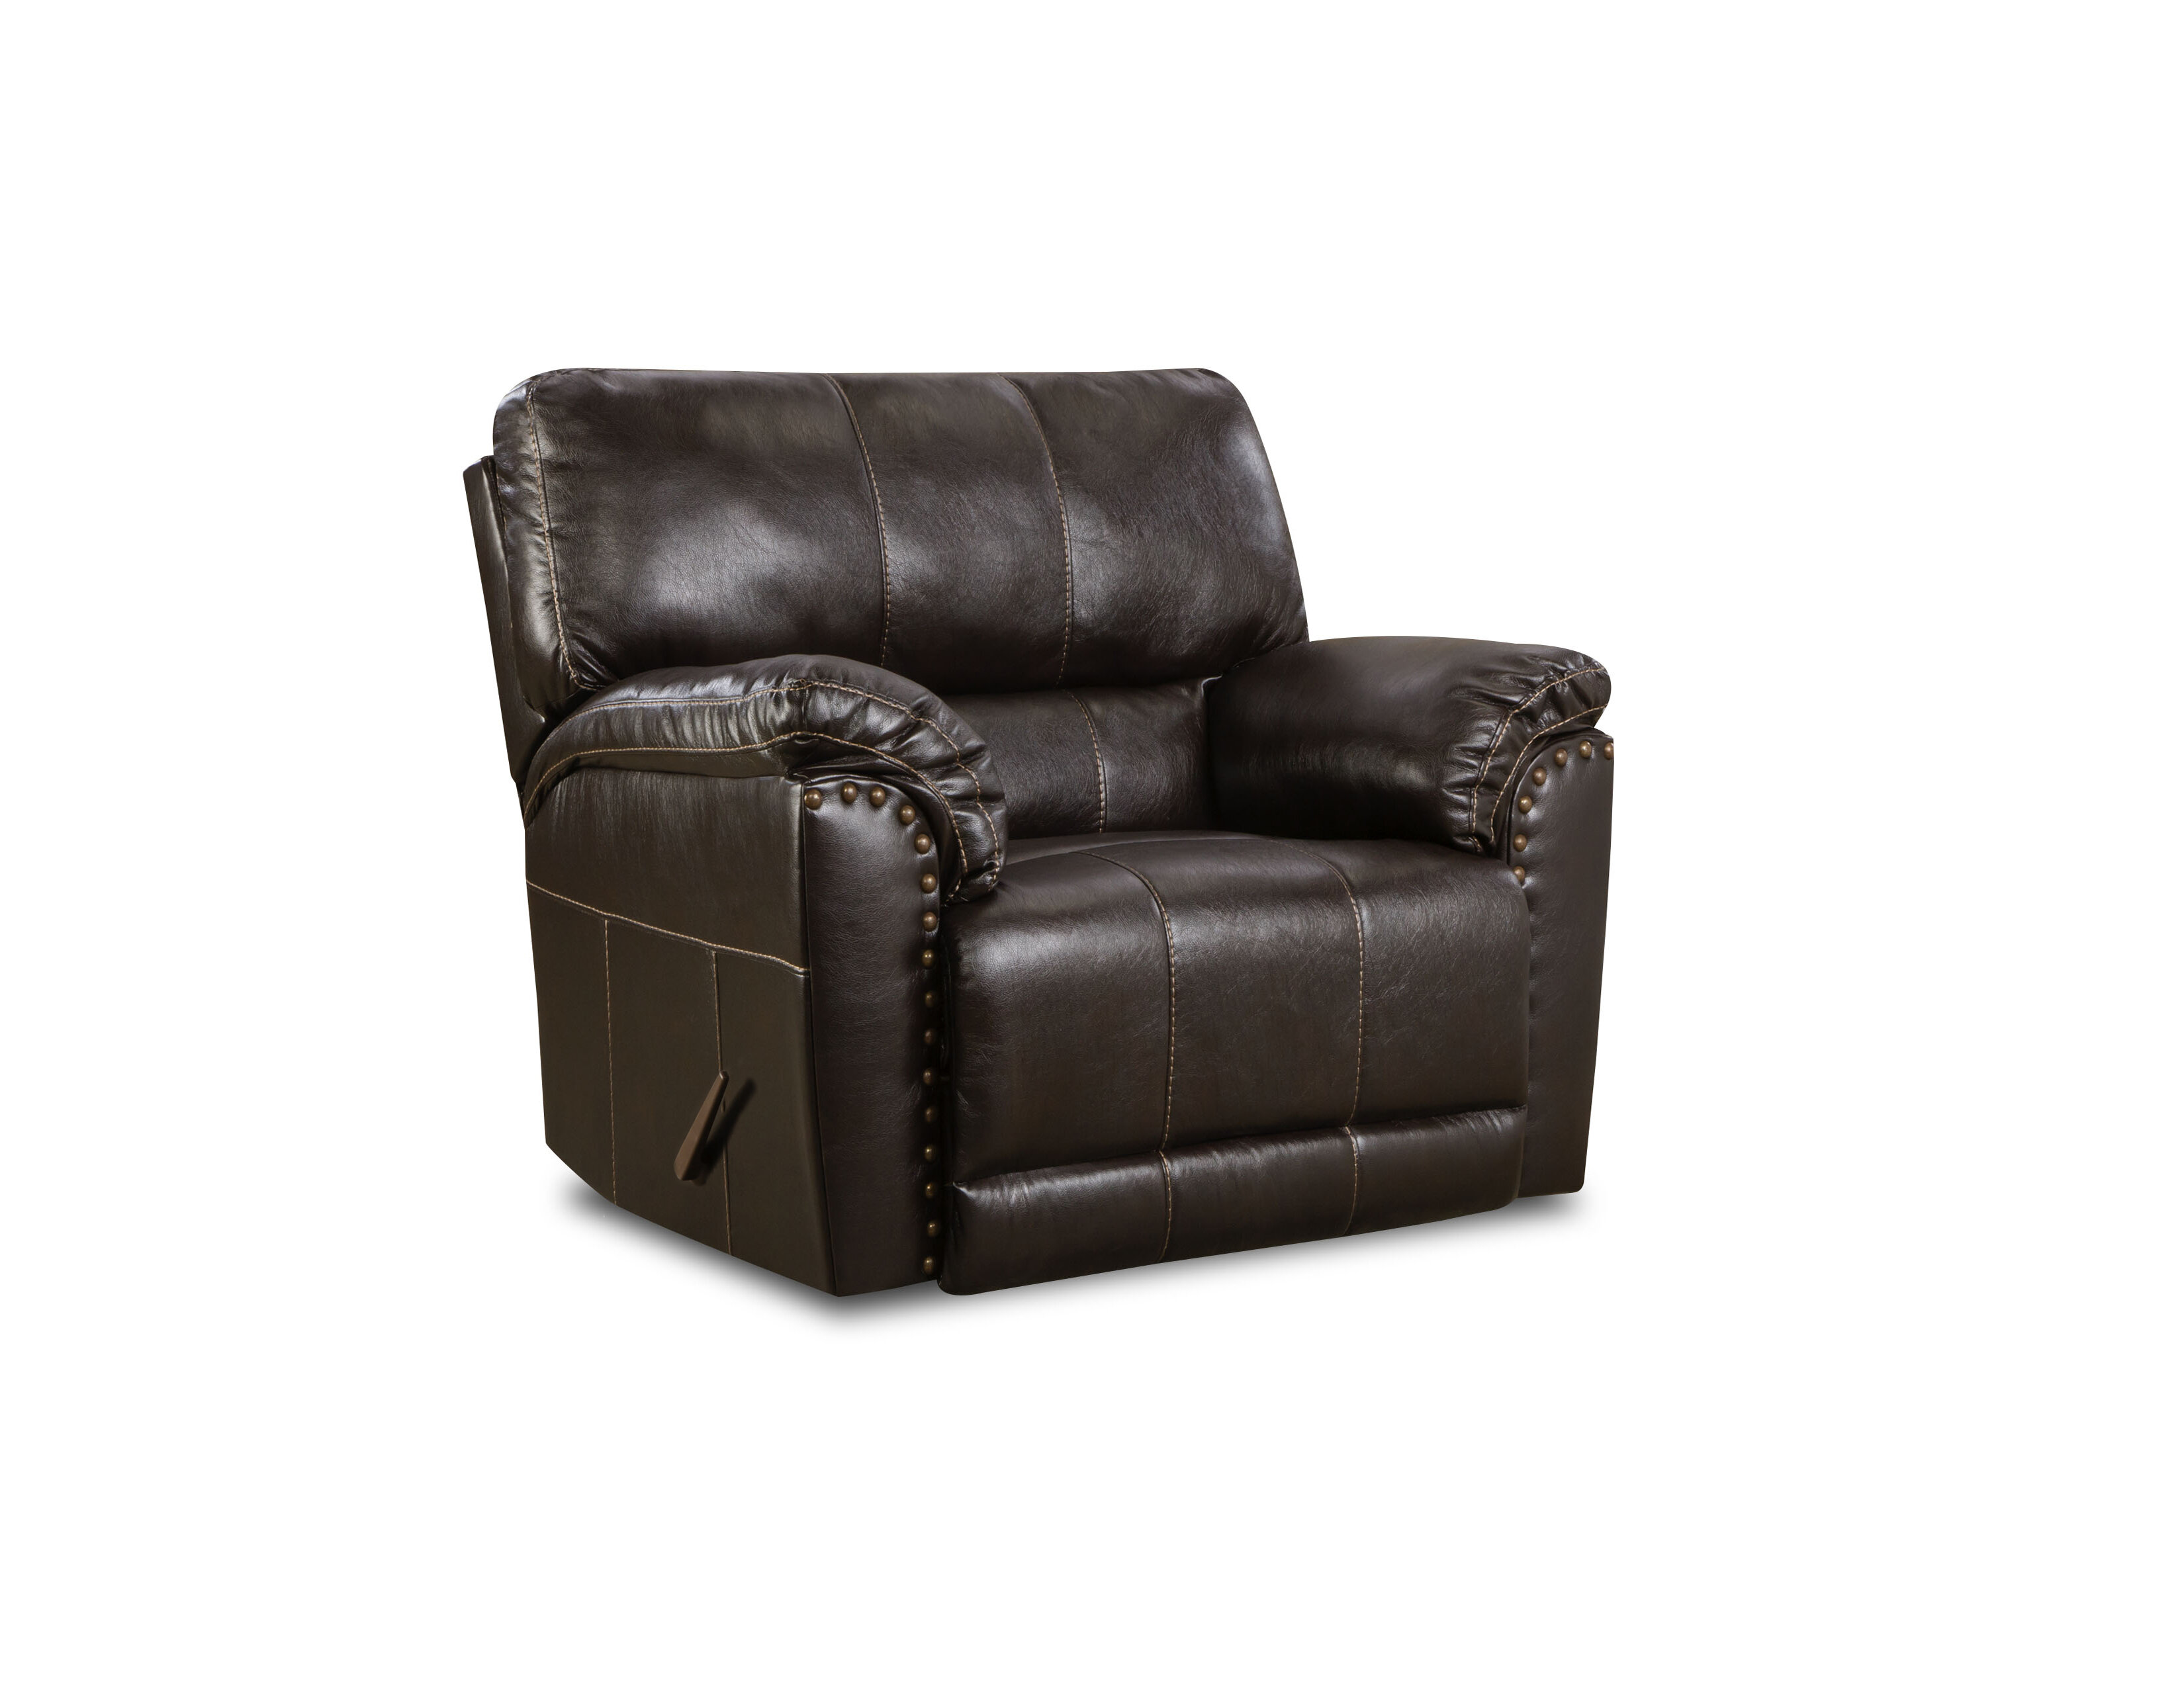 Incredible Simmons Upholstery Abilene Manual Glider Recliner Reviews Ocoug Best Dining Table And Chair Ideas Images Ocougorg